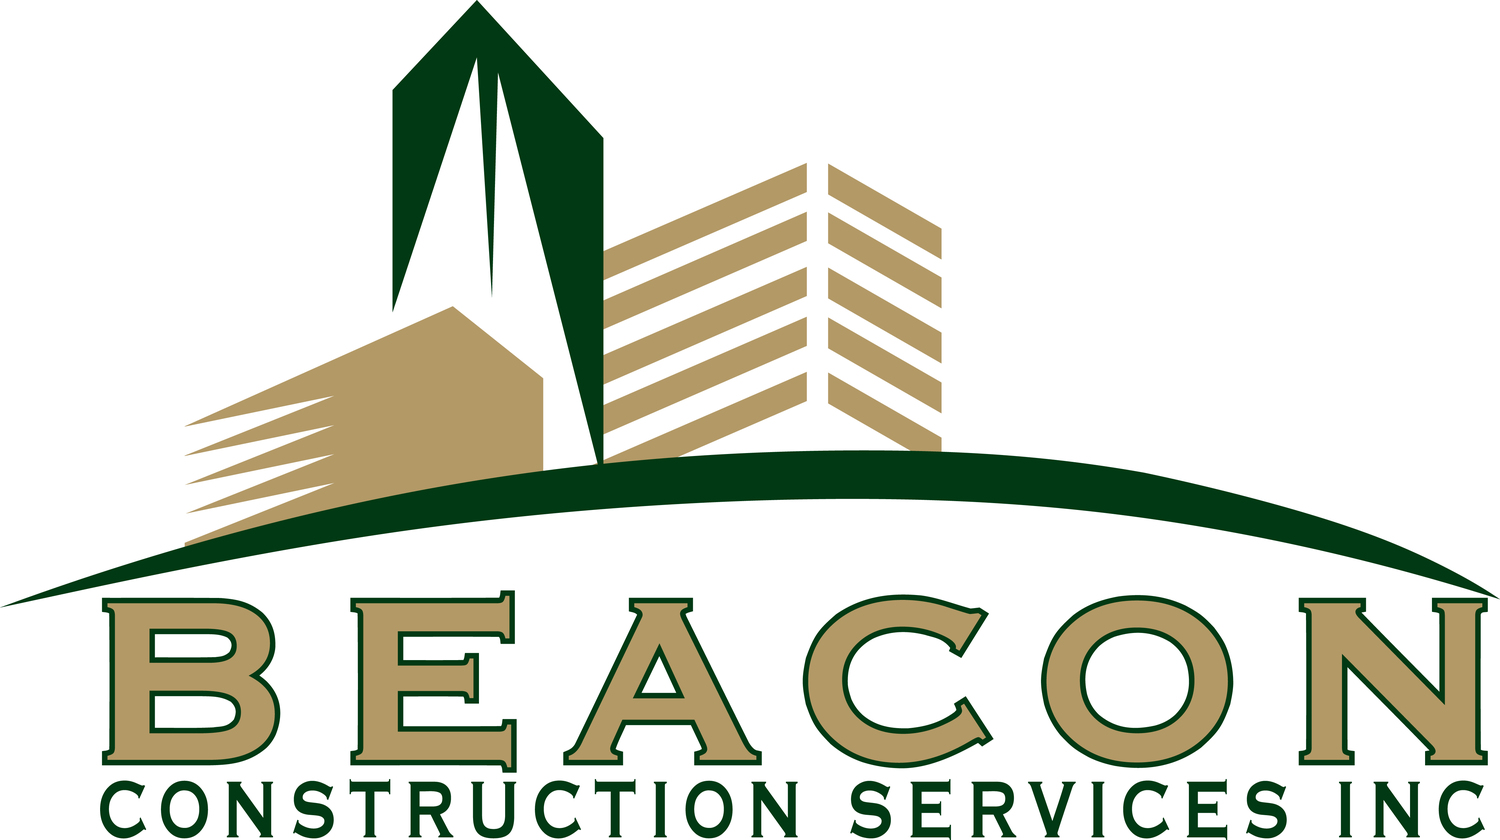 Beacon Construction Services